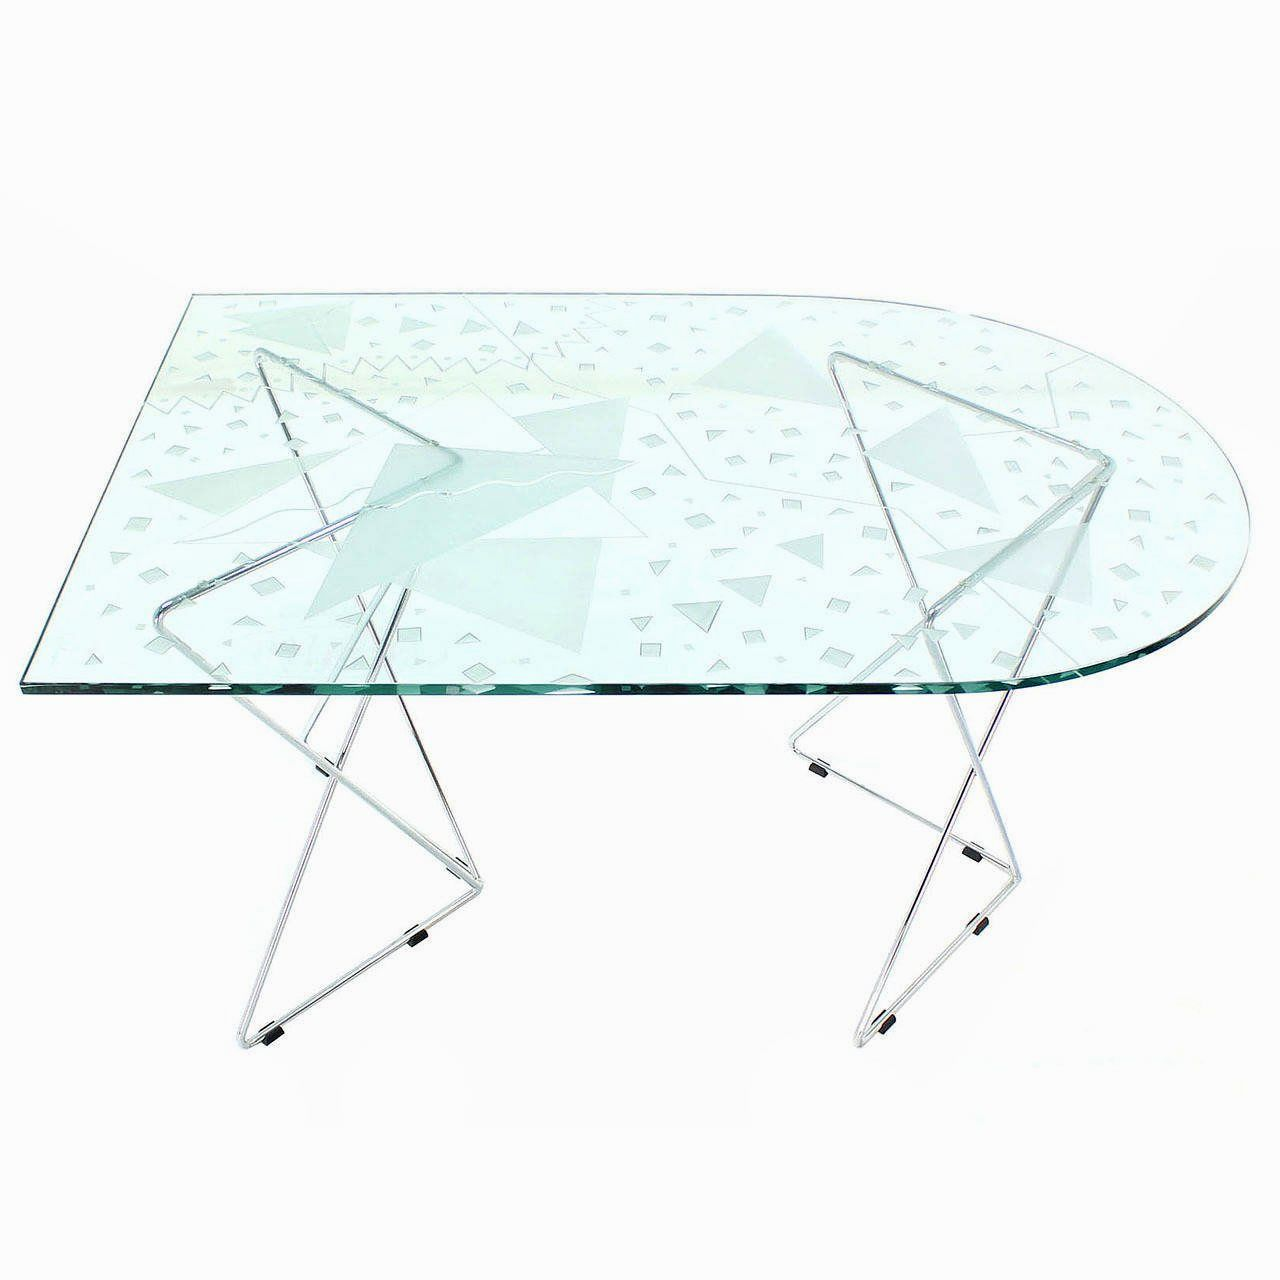 finest glass sofa table wallpaper-Superb Glass sofa Table Layout